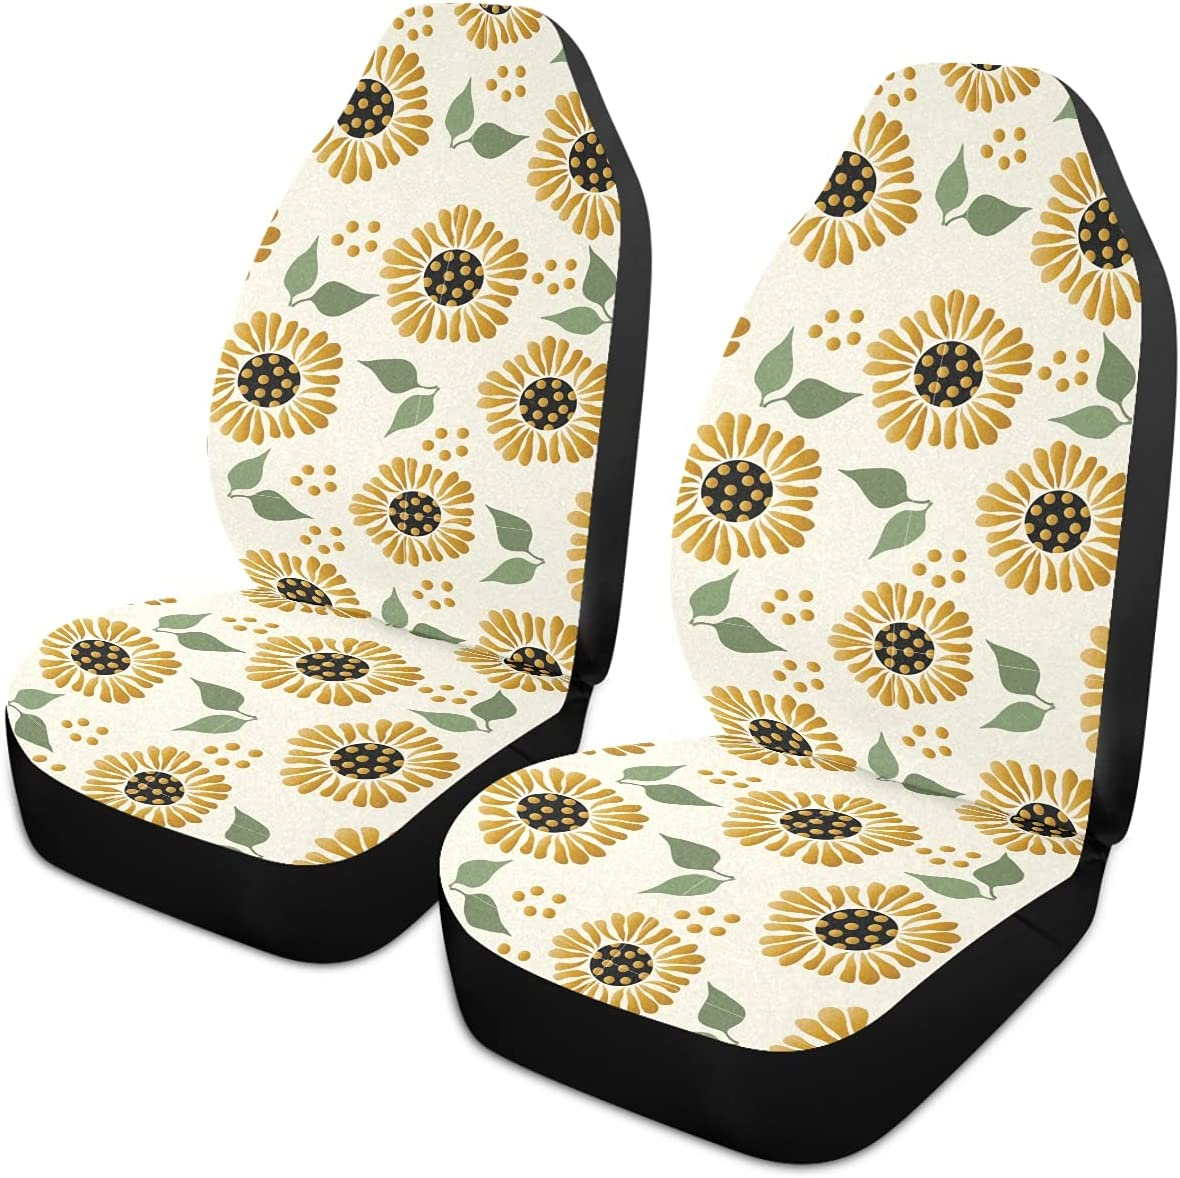 Oarencol Vintage Sunflower Art Car Universal Covers Fr Seat discount Max 73% OFF Auto